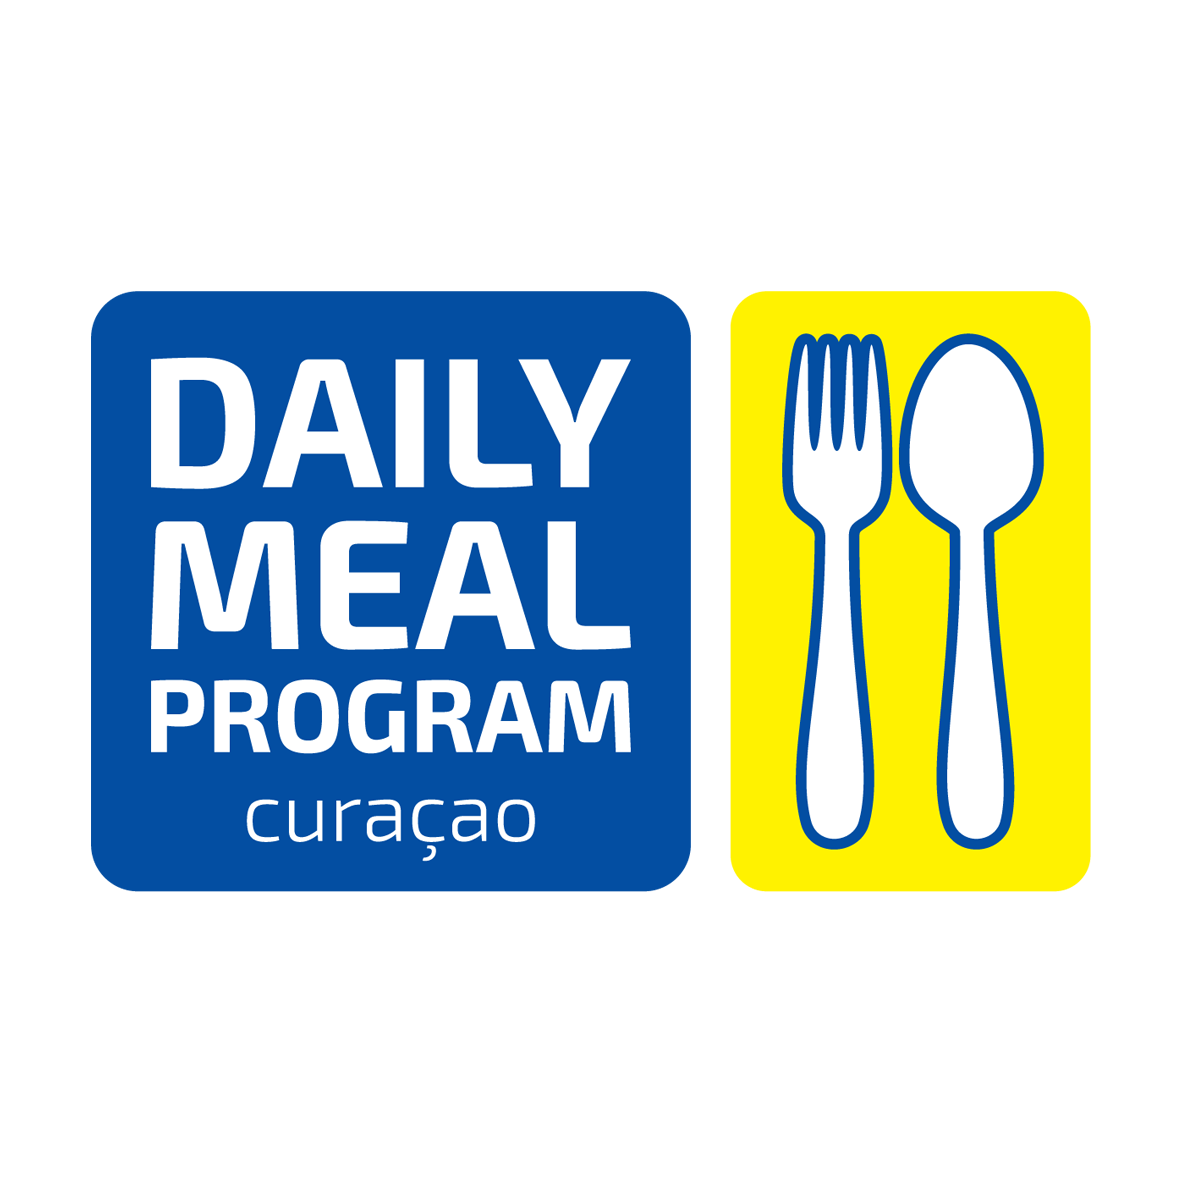 Daily Meal Program